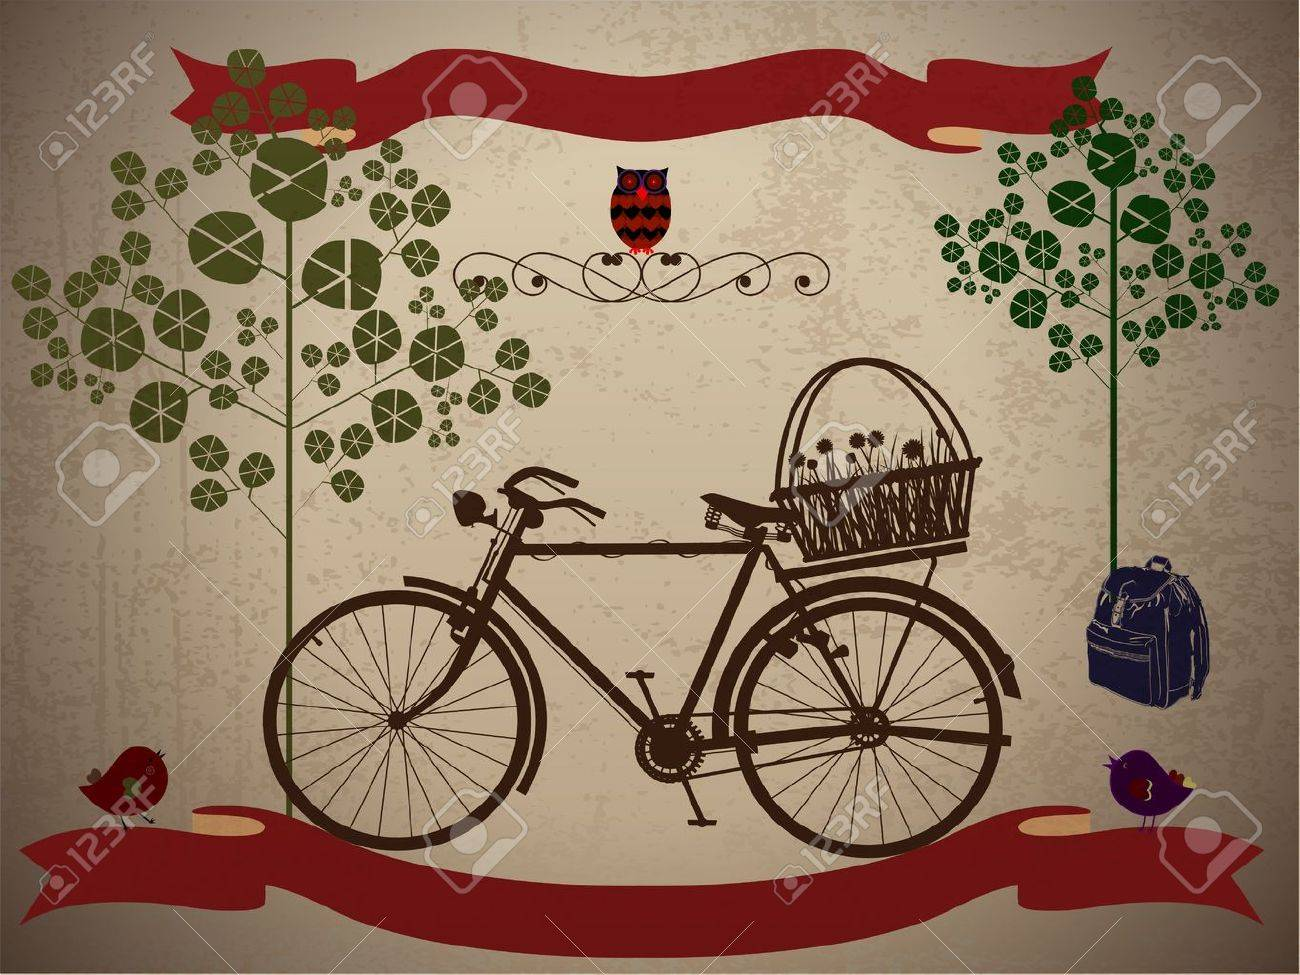 Riding a bike in style, on holiday with Grunge Effect Stock Vector - 15397358